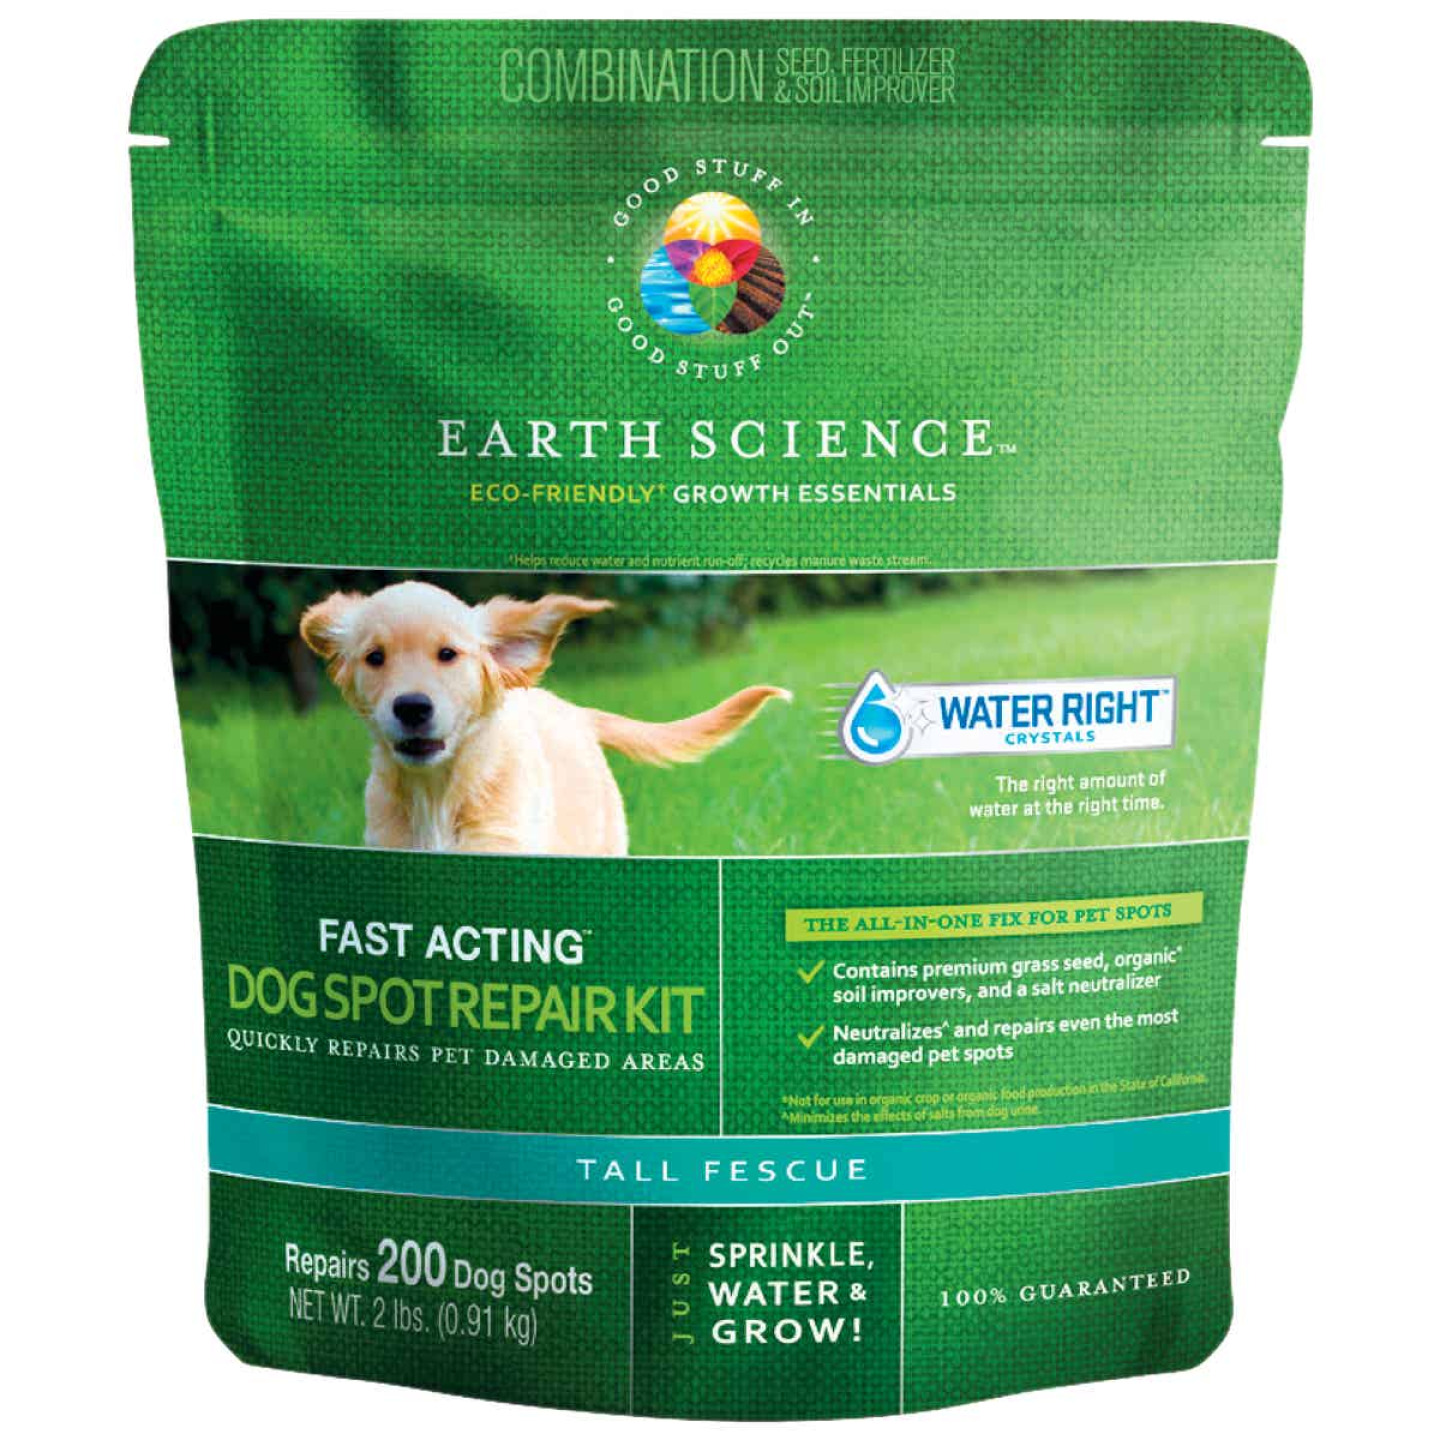 Earth Science 2Lb. Covers Up to 300 Dog Spots Triple Fescue Grass Patch & Repair Image 1